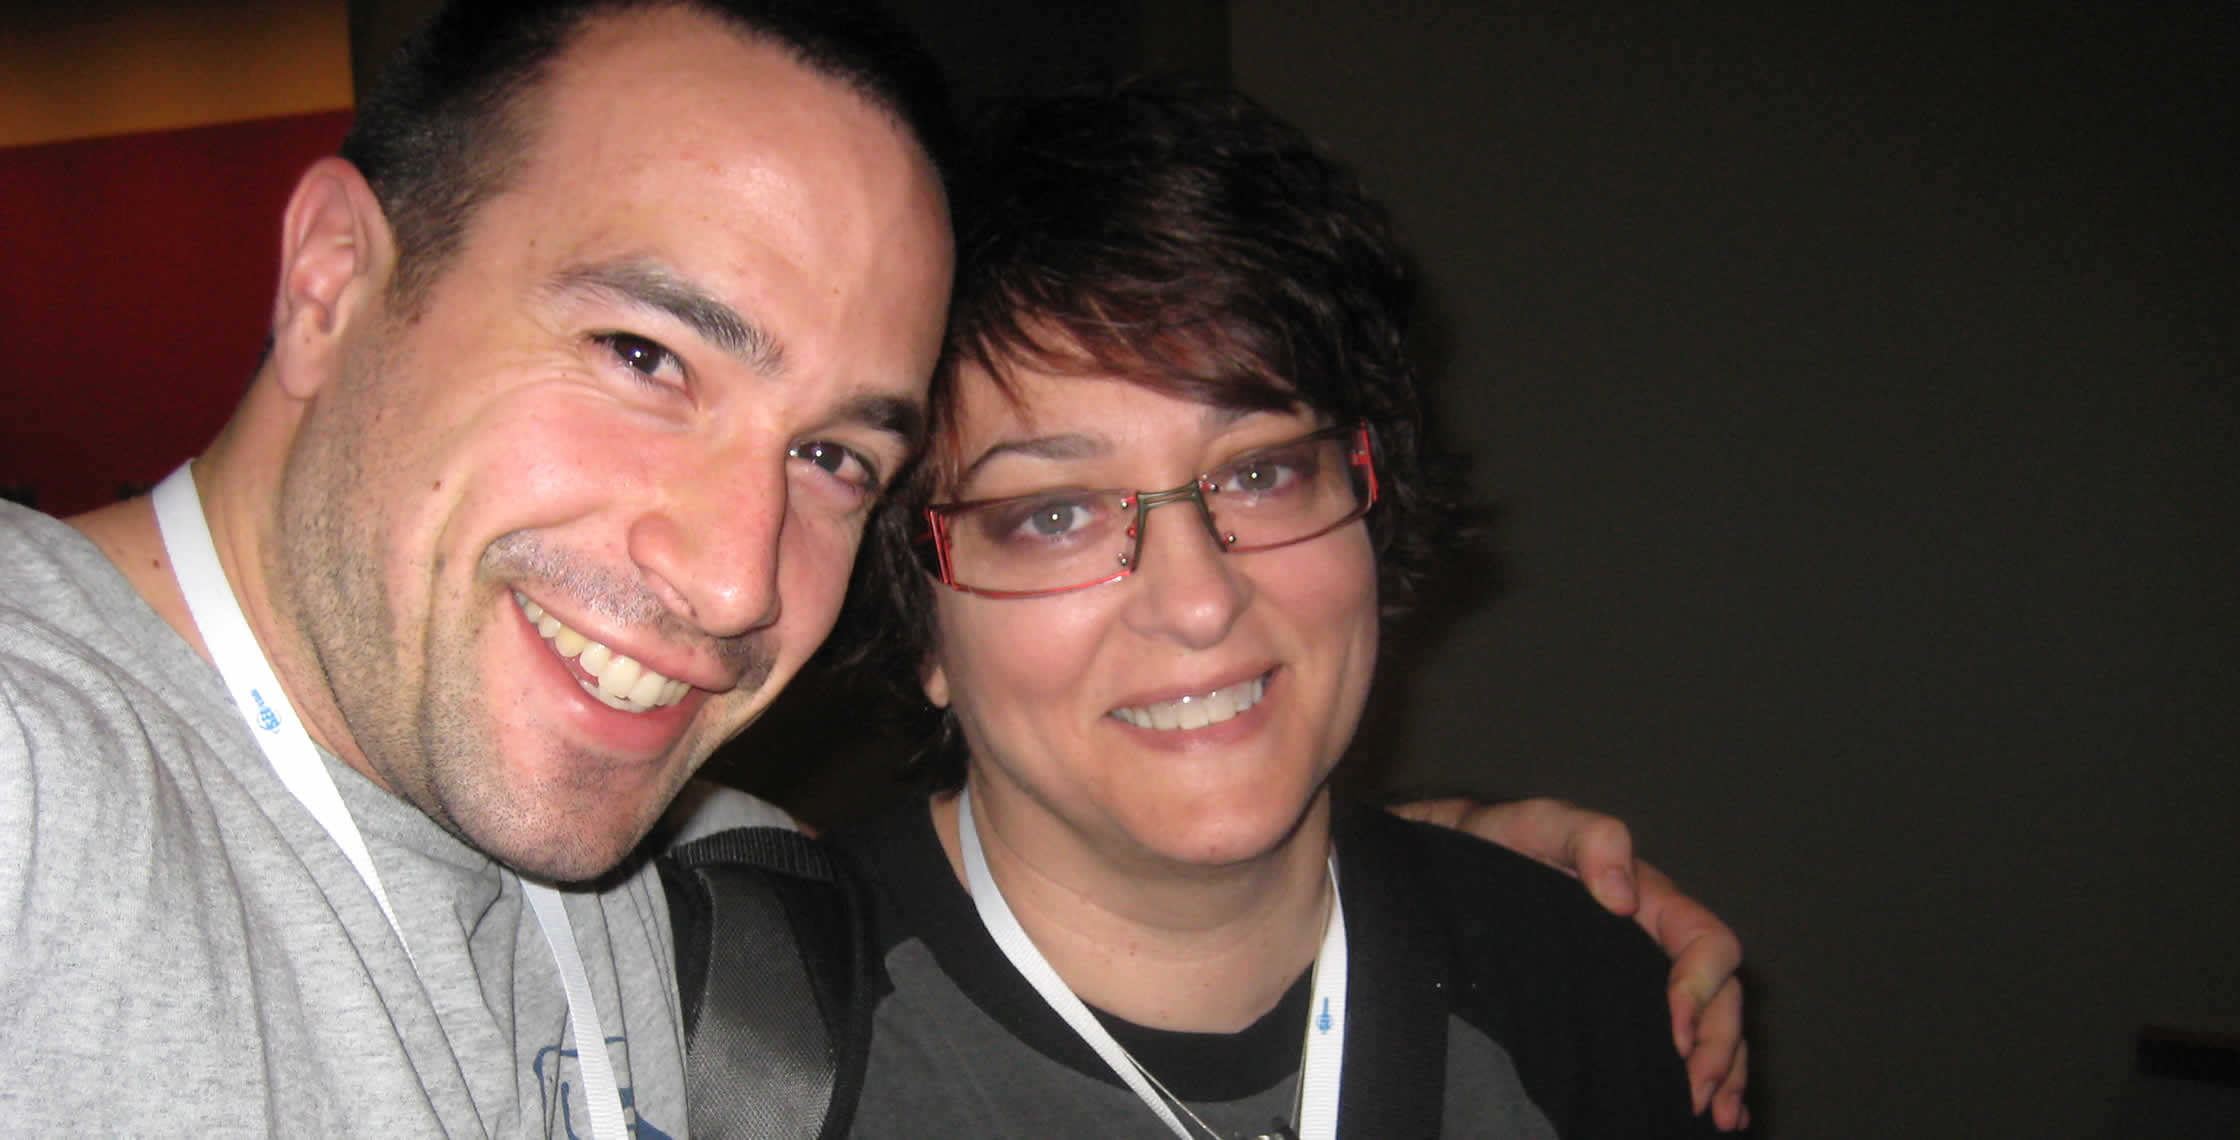 Ben Nadel at CFUNITED 2008 (Washington, D.C.) with: Dee Sadler